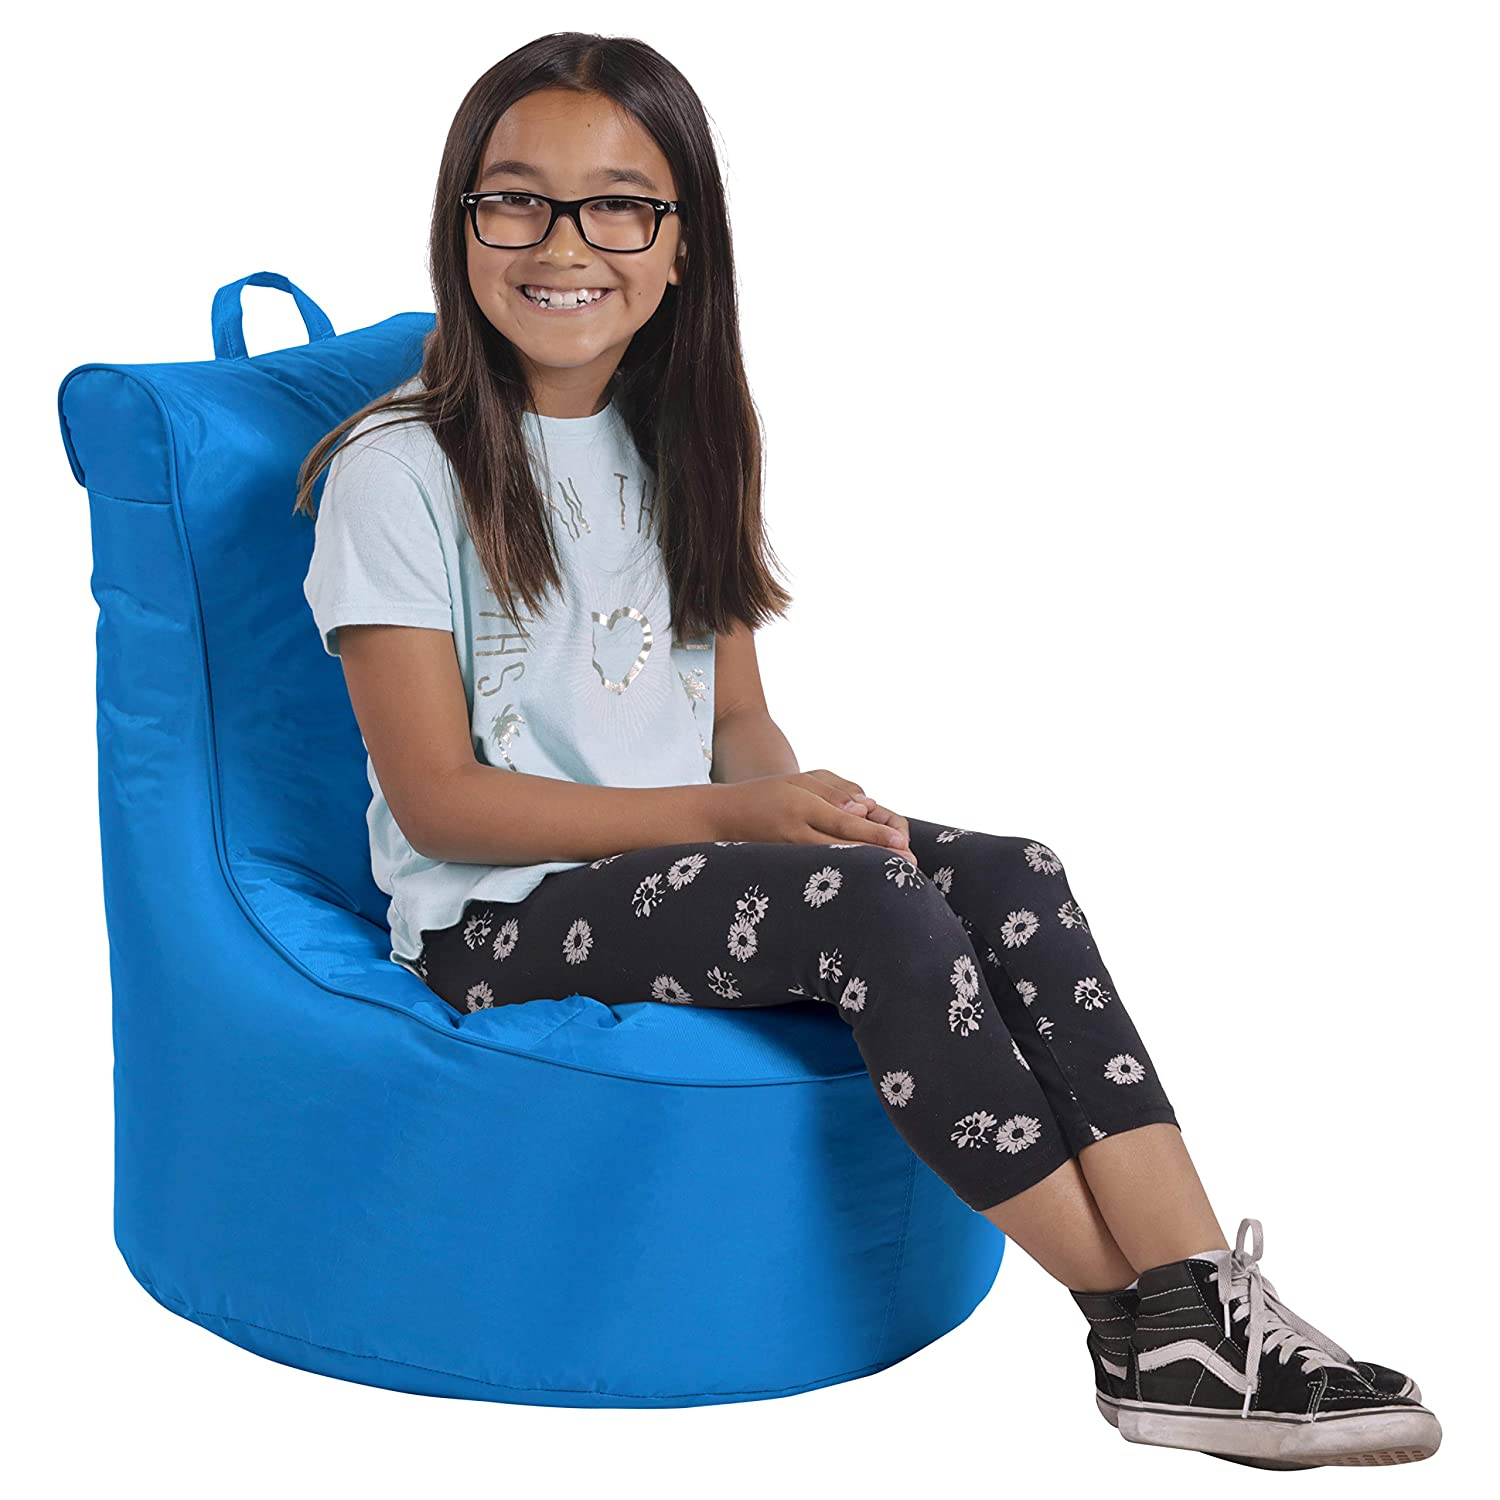 Cali Paddle Out Sack Bean Bag Chair, Dirt-Resistant Coated Oxford Fabric, Flexible Seating for Kids, Teens, Adults, Furniture for Bedrooms, Dorm Rooms, Classrooms - French Blue